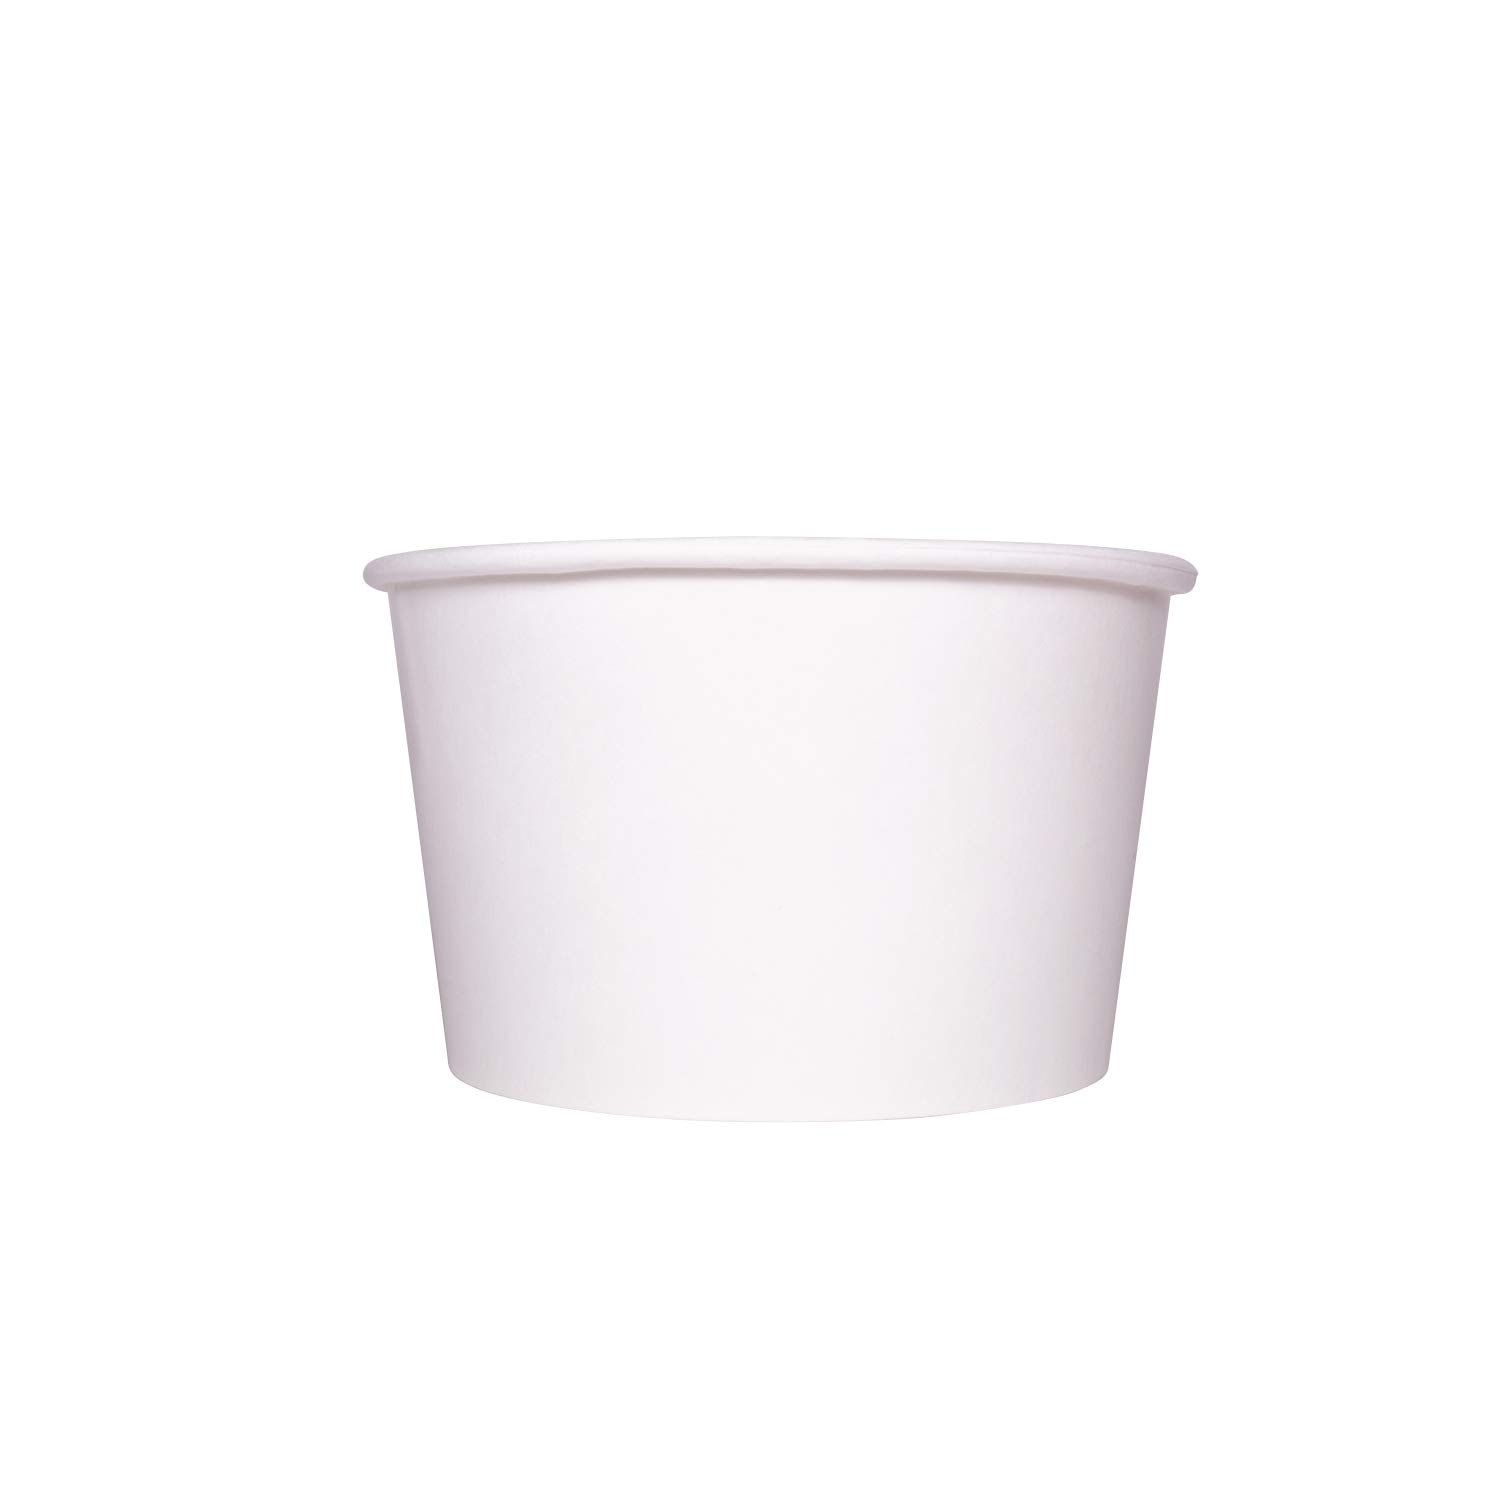 Karat C-KDP28W 28 oz. Food Container White Limited price 600 of Case New sales -